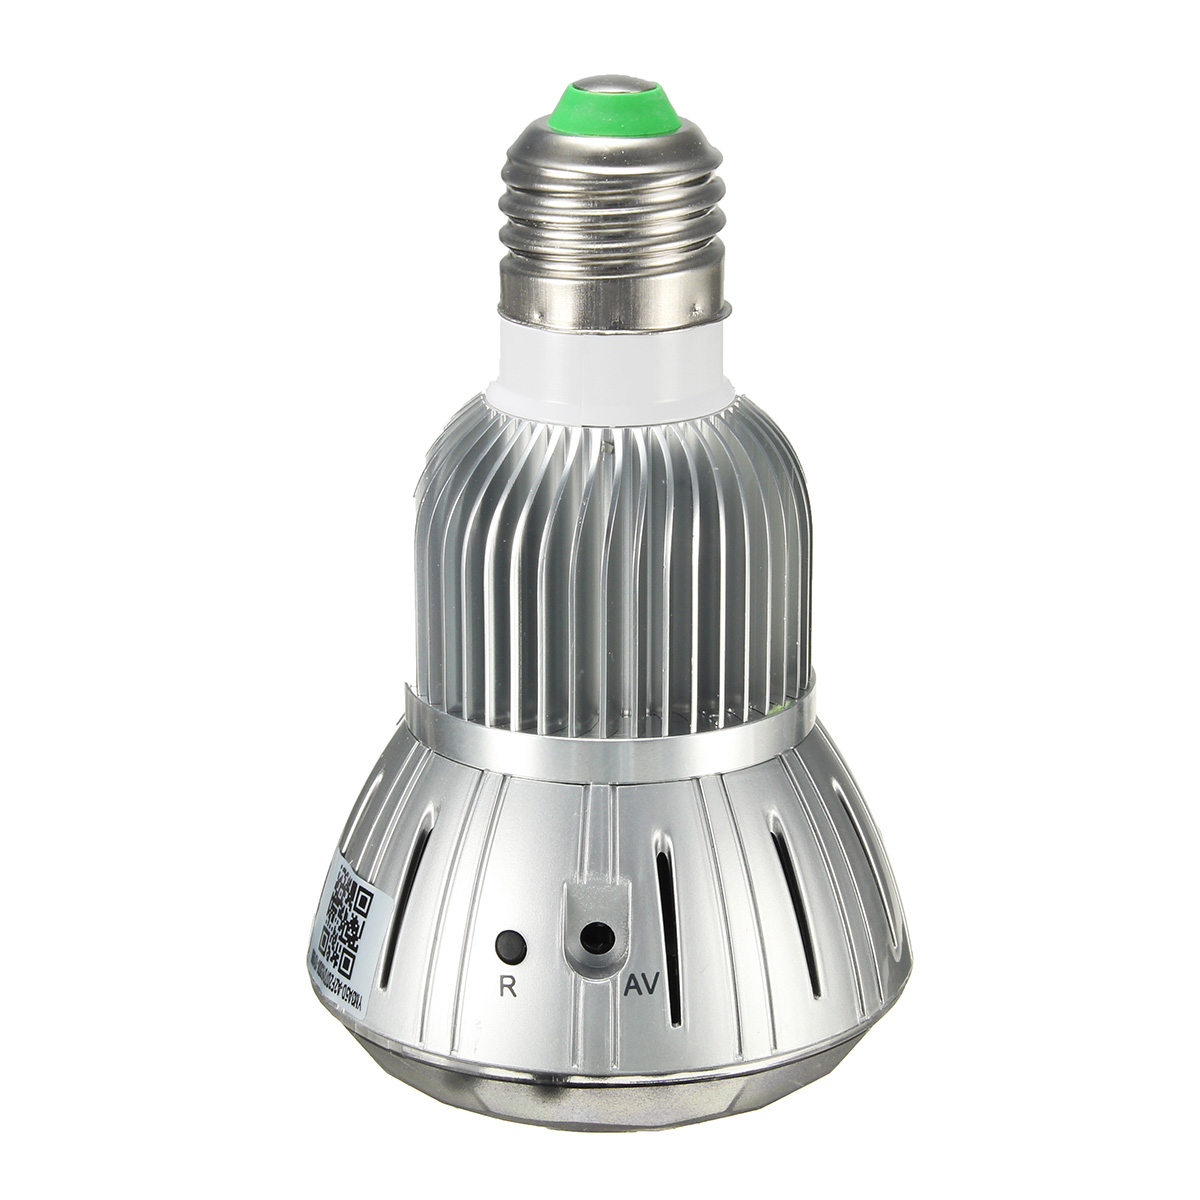 1080P IP Camera HD WIFI H.264 Bulb Type Infrared Night Vision Wireless Monitoring Hidden Bulb Camera